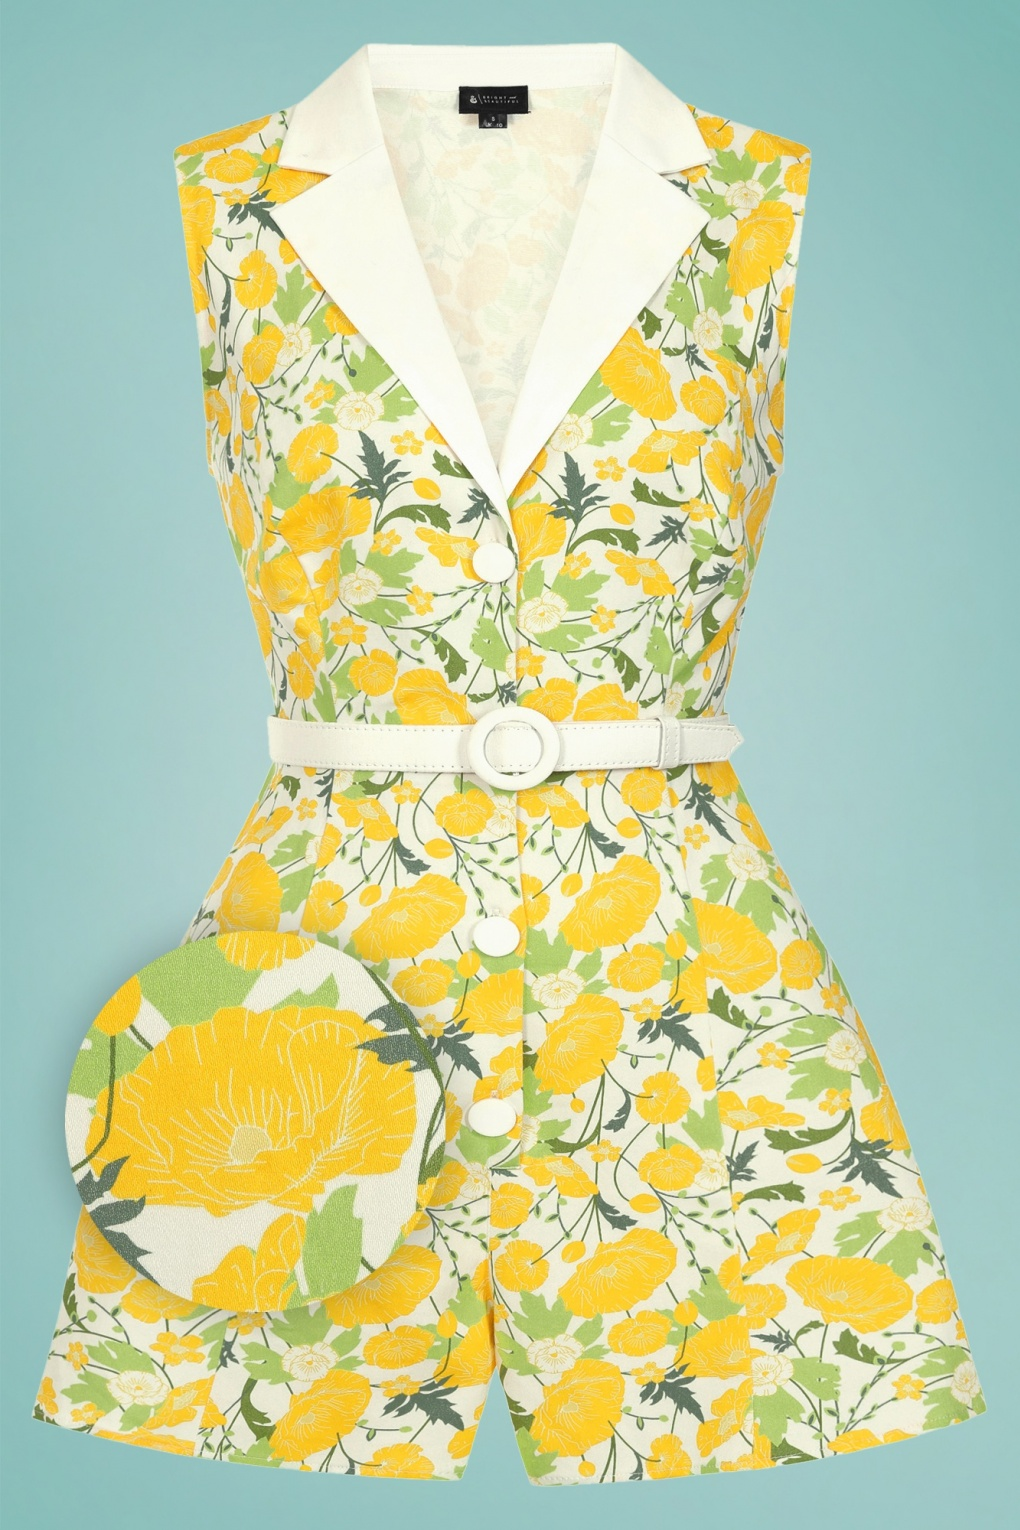 Vintage Rompers, Playsuits   Retro, Pin Up, Rockabilly Playsuits 60s Lucy Buttercup Floral Playsuit in White and Yellow £47.57 AT vintagedancer.com